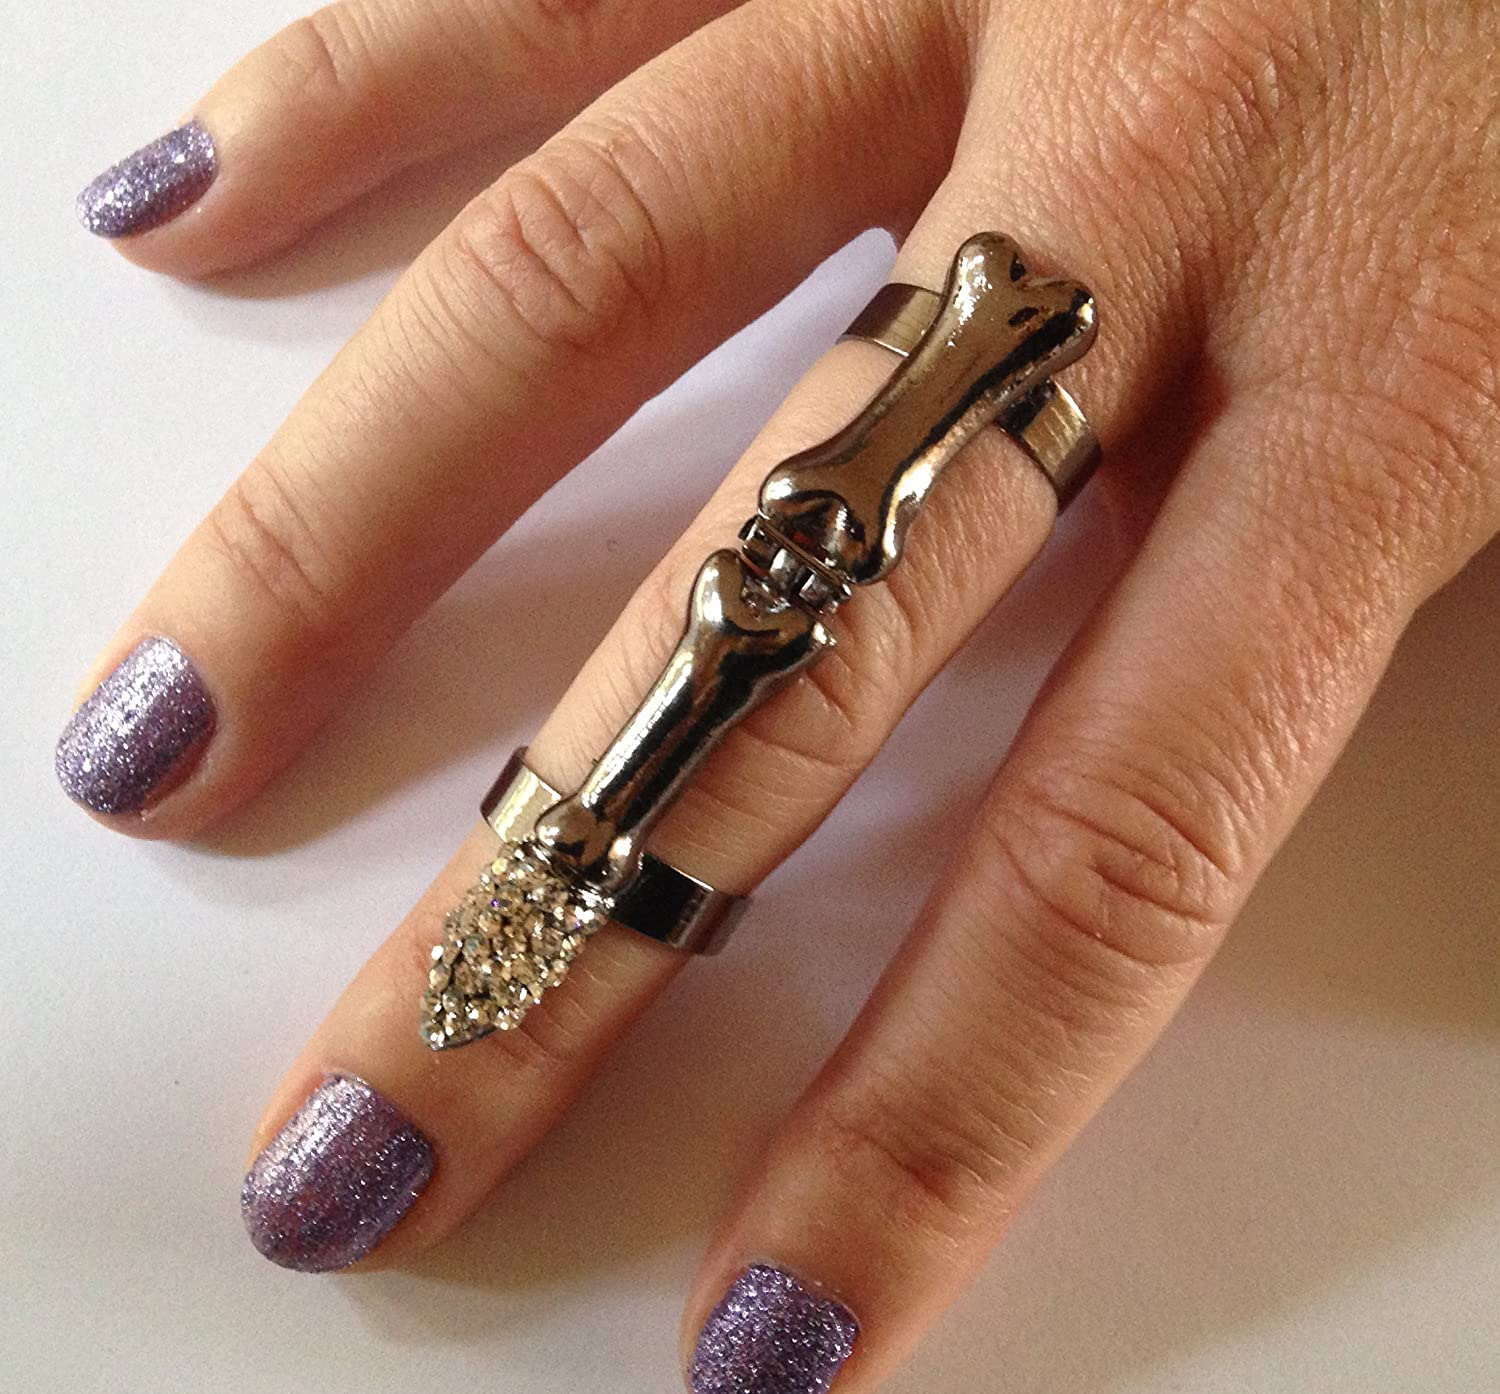 Grufti Punk Rock Skelett Ganzer Finger Diamant Nagel- Knuckle-Ring ...